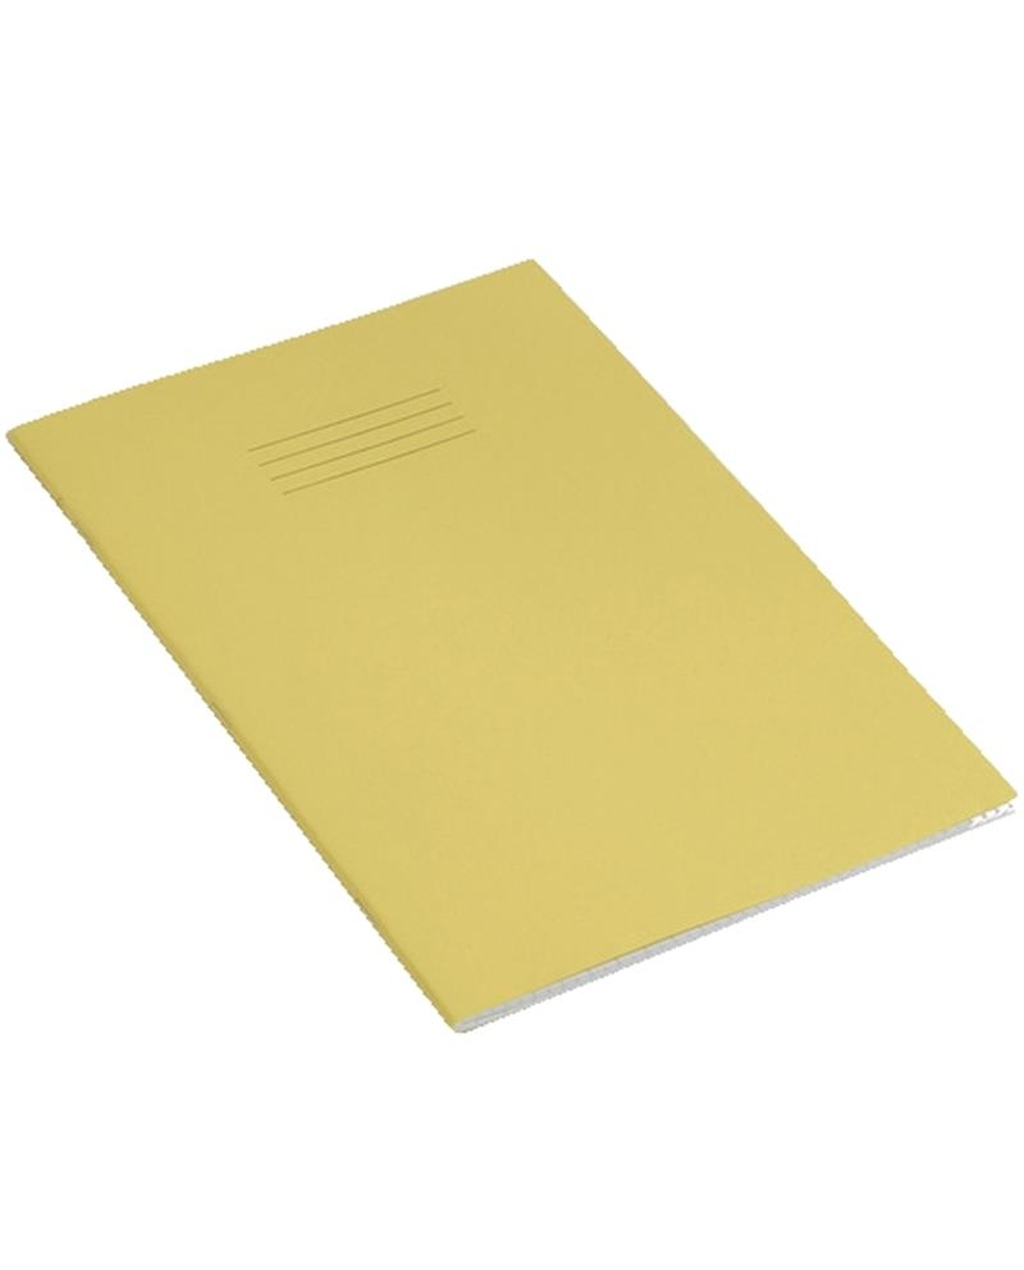 Exercise Book 9 x 7 (229 x 178mm) Yellow Cover 10mm Squares 48 Pages